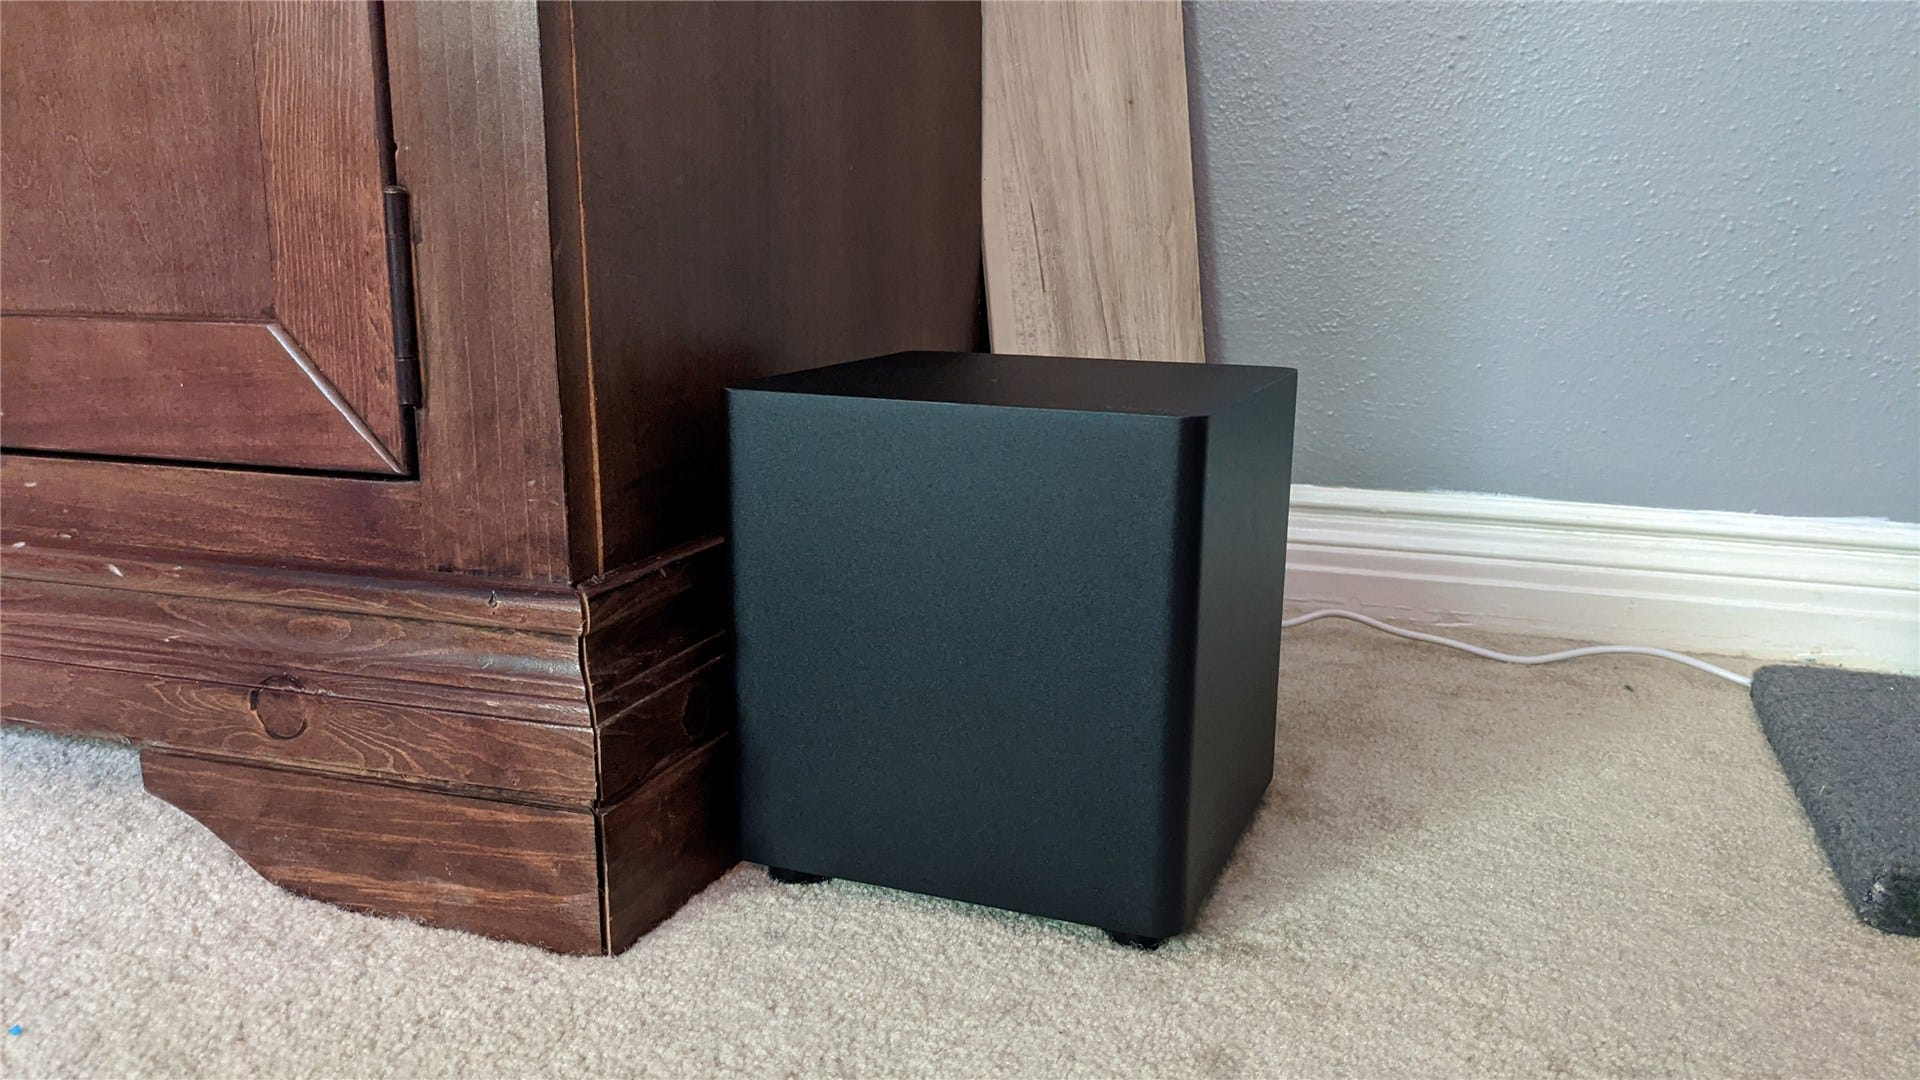 The subwoofer